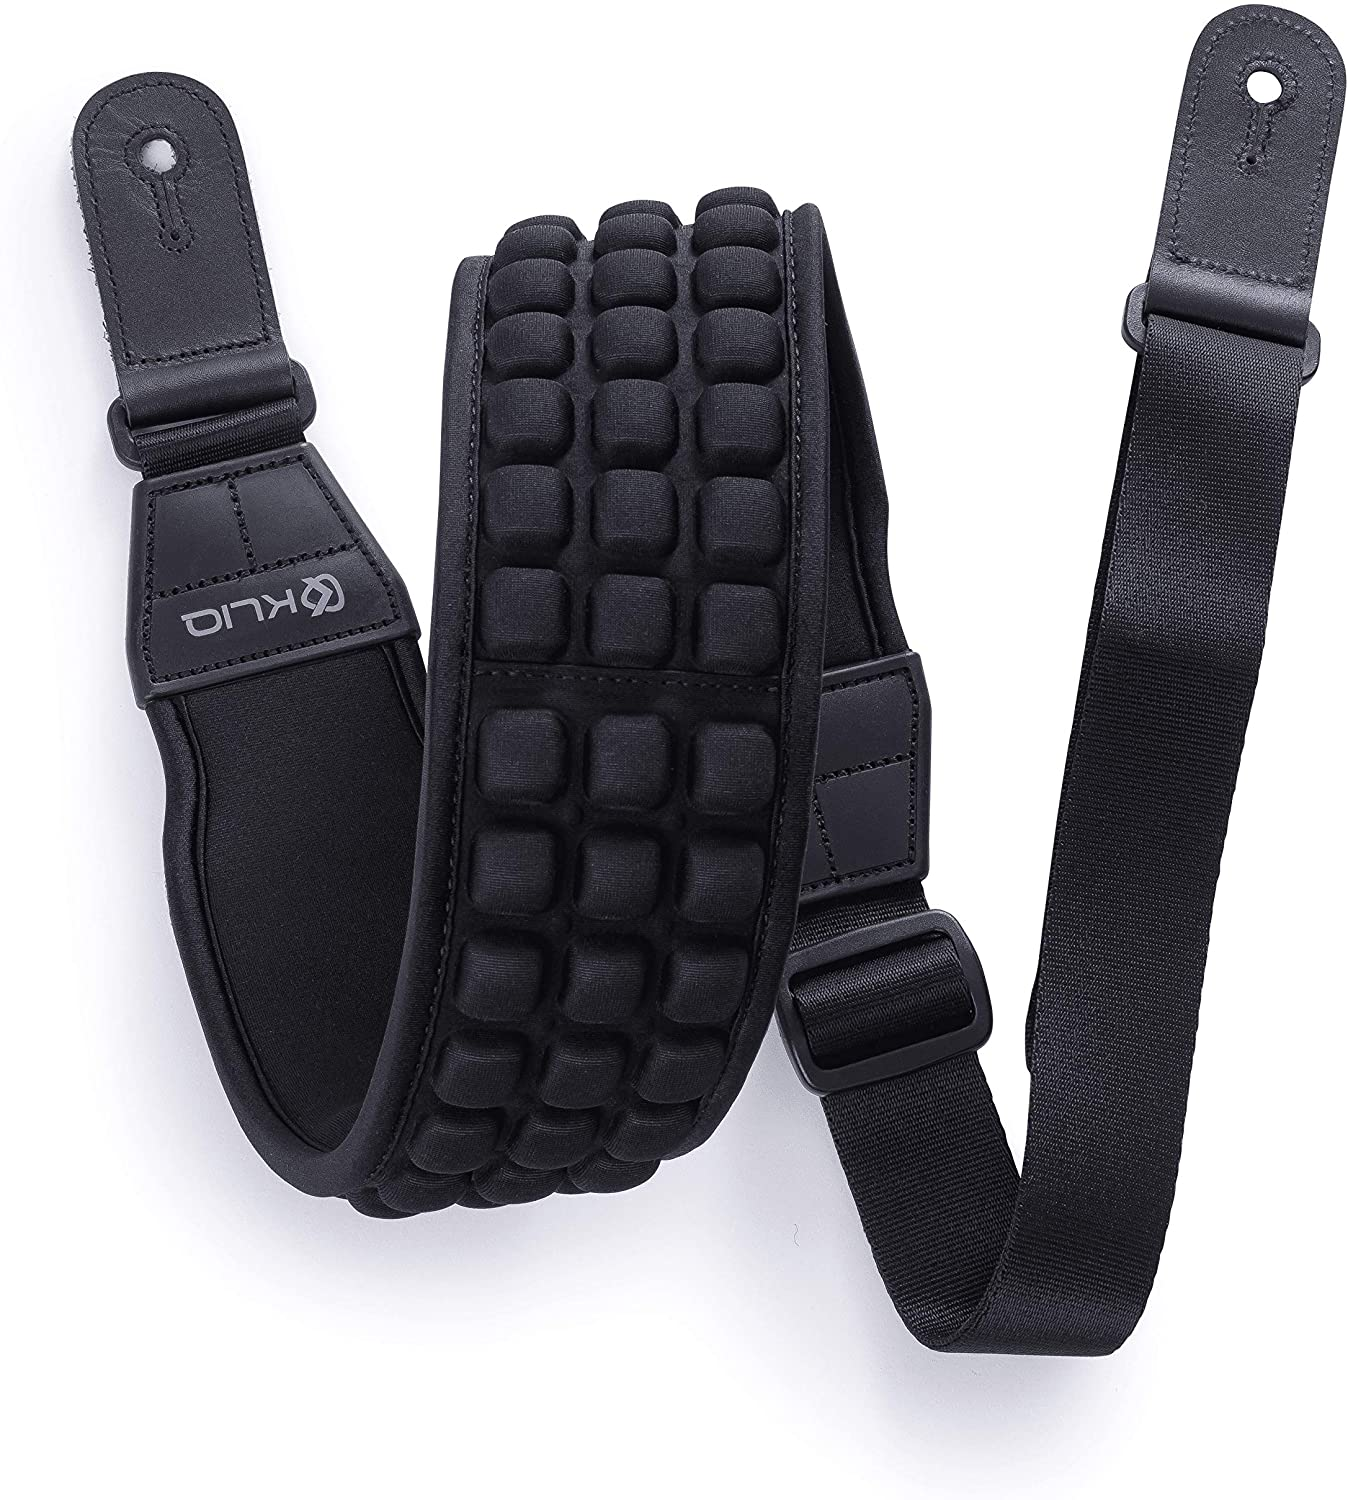 "KLIQ AirCell Guitar Strap for Bass & Electric Guitar with 3"" Wide Neoprene Pad and Adjustable Length from 46"" to 56"""